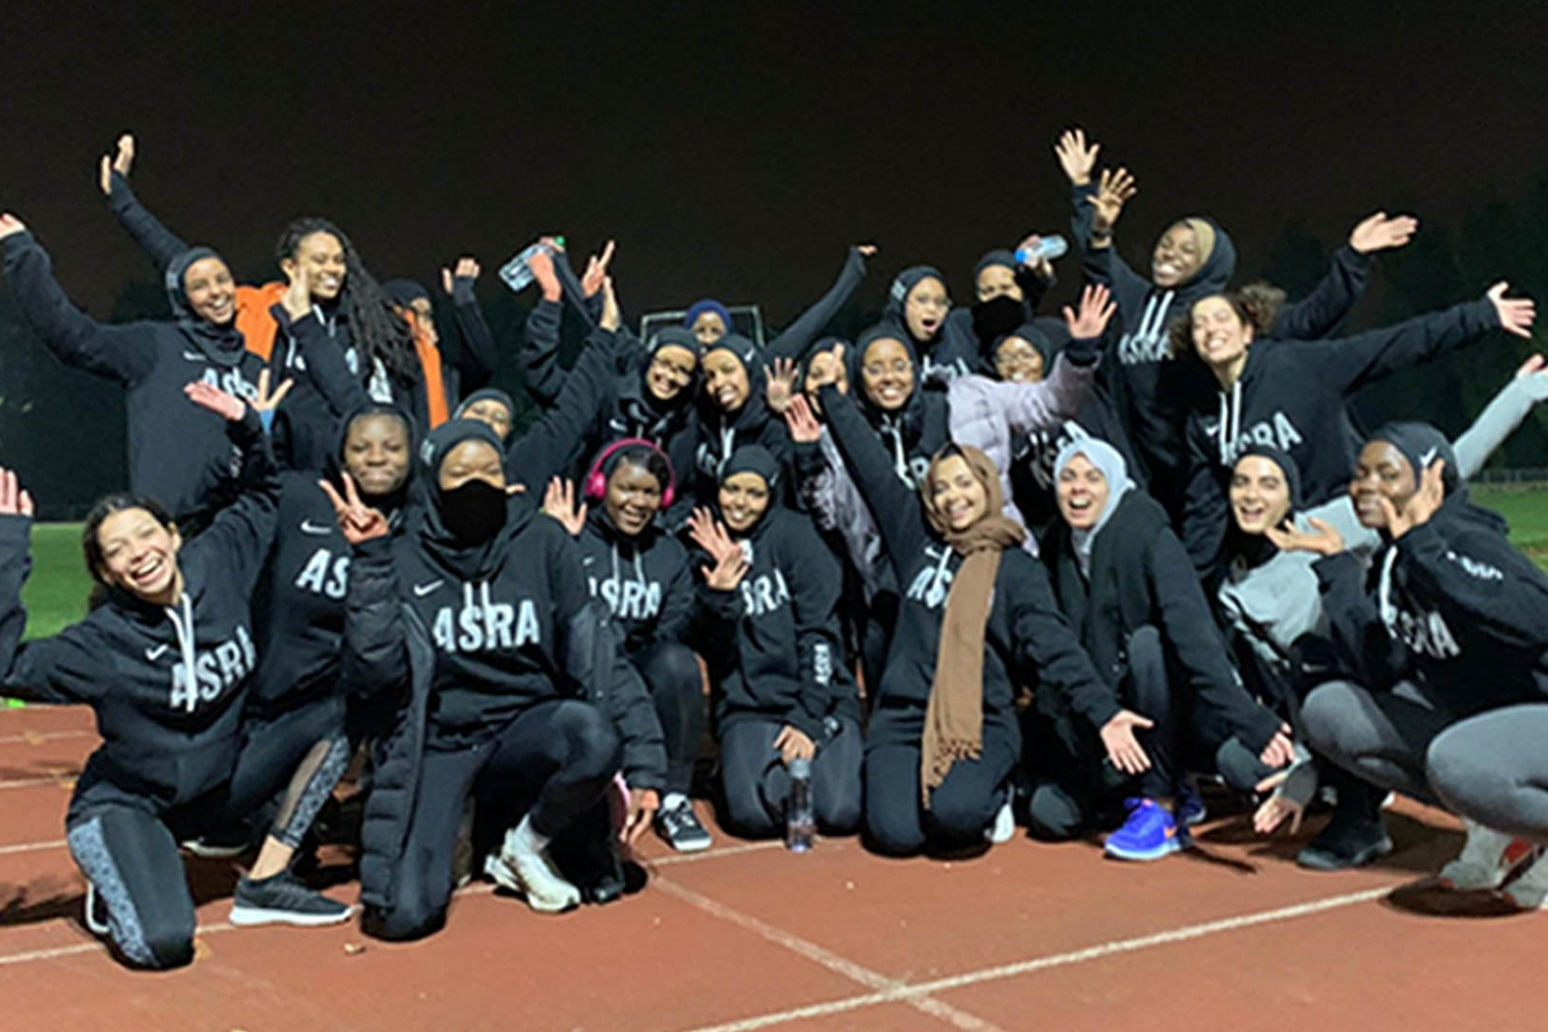 Student sets up running club so other Muslim women feel safe when exercising.